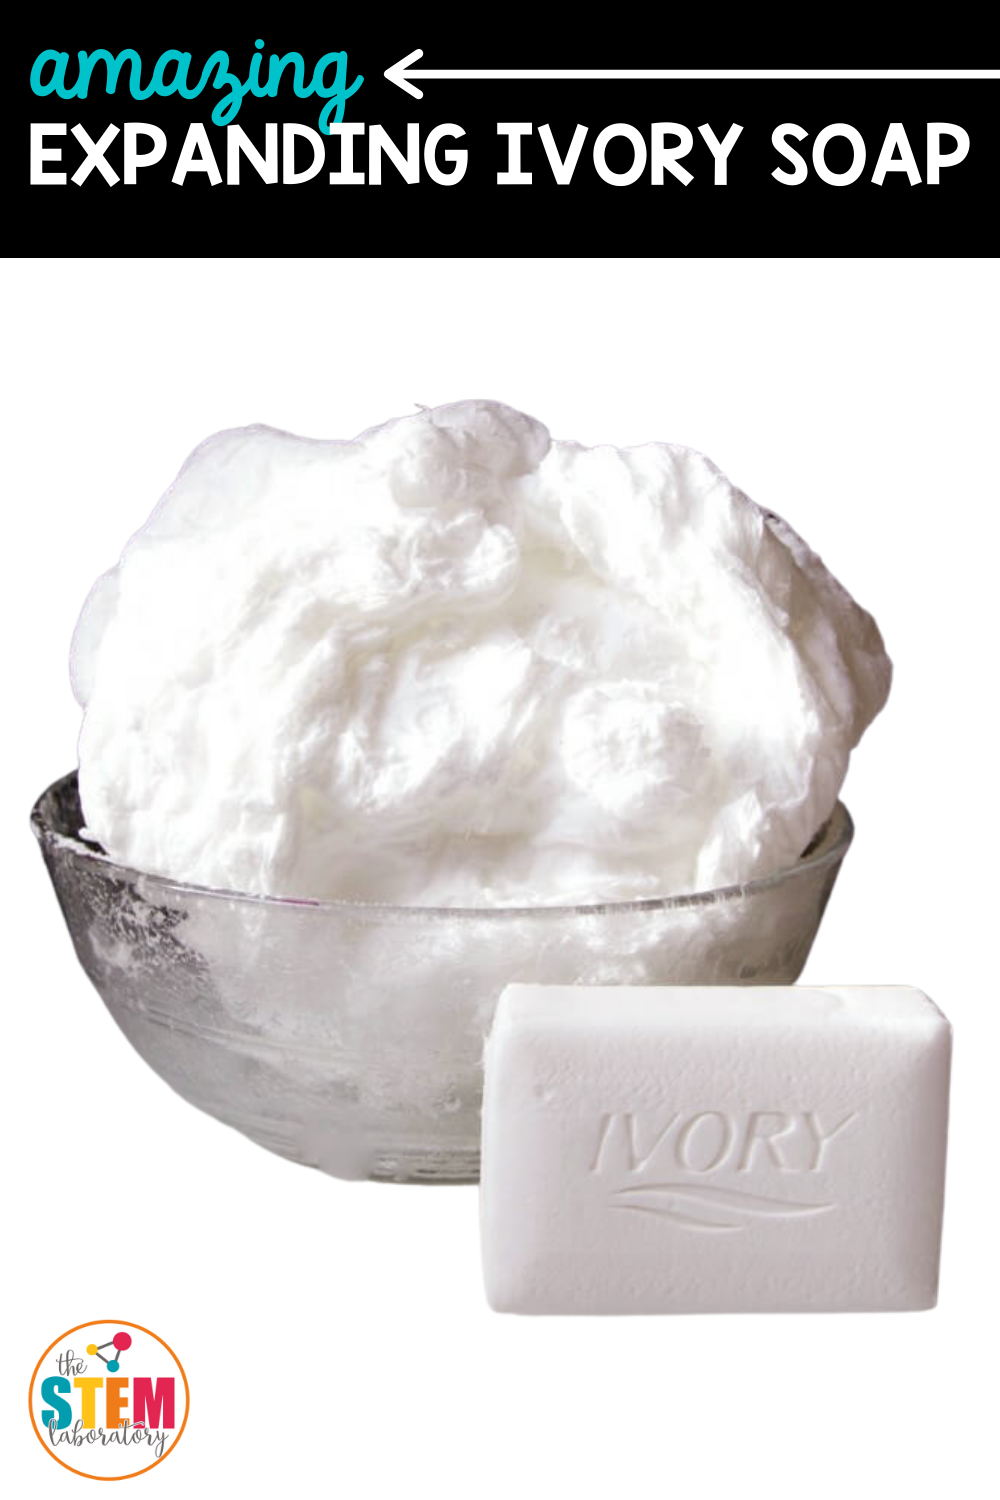 Expanding Ivory Soap Experiment